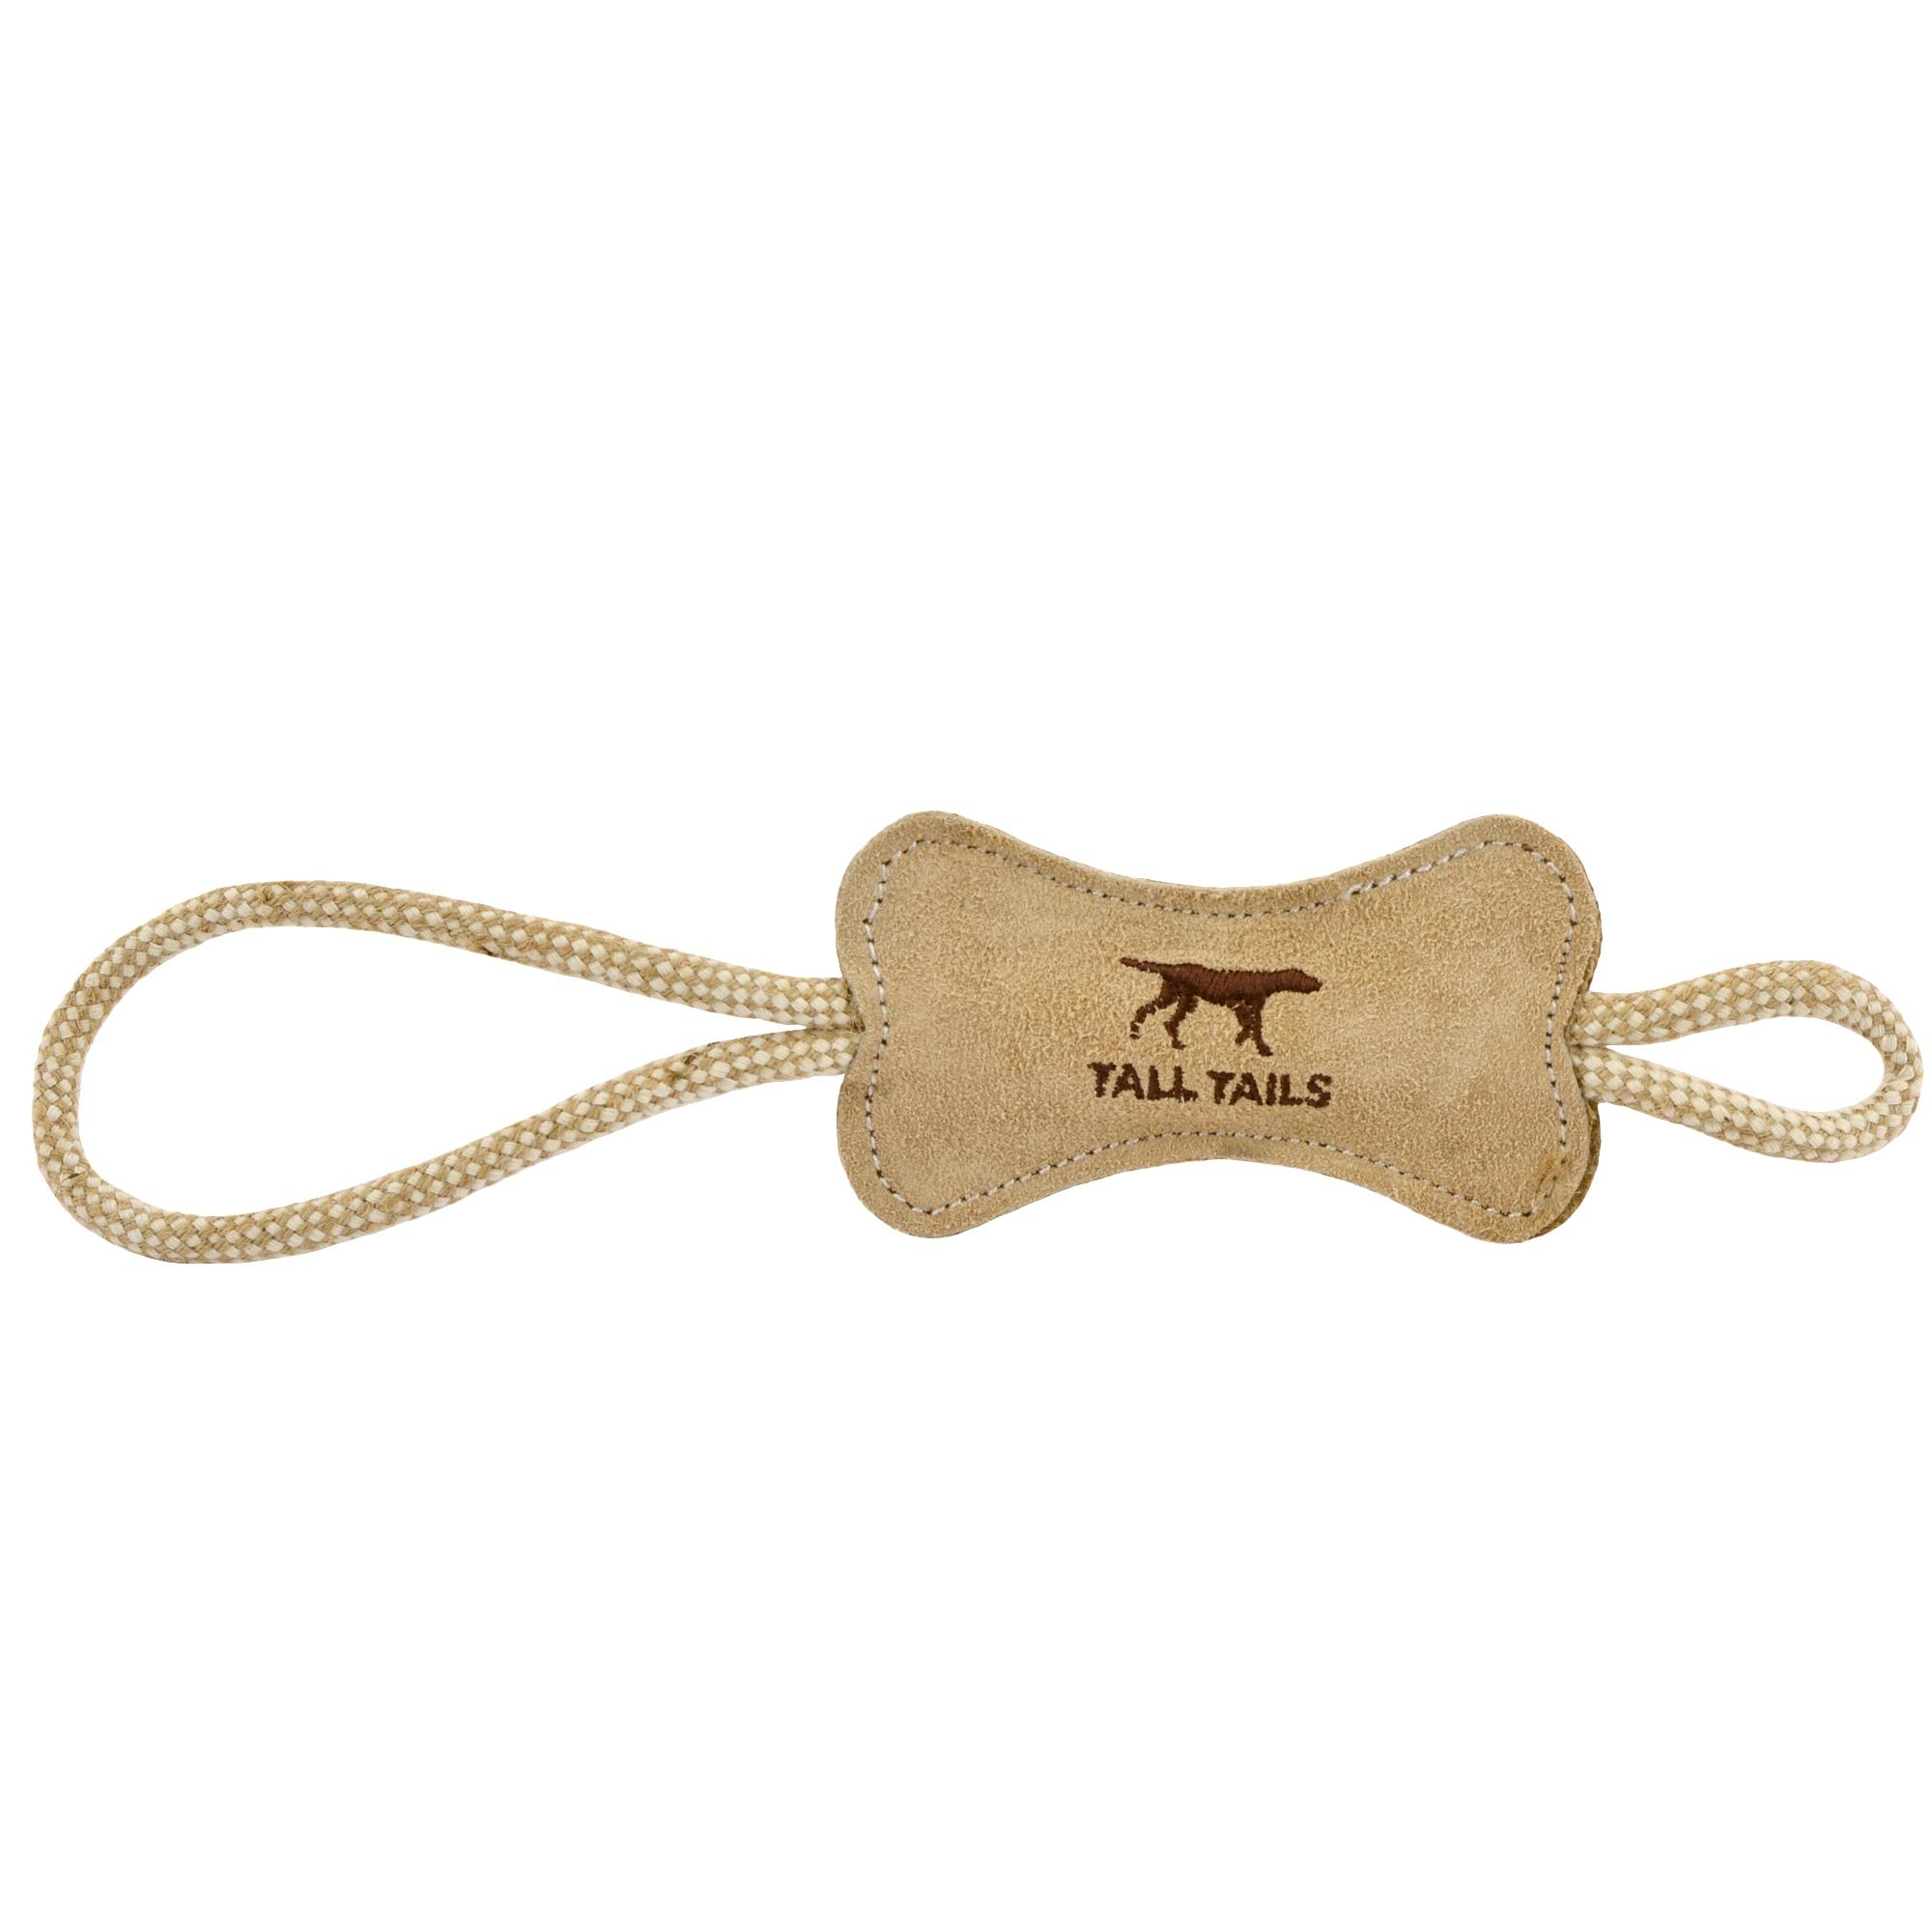 Tall Tails Natural Leather Bone Tug Dog Toy, 16-in